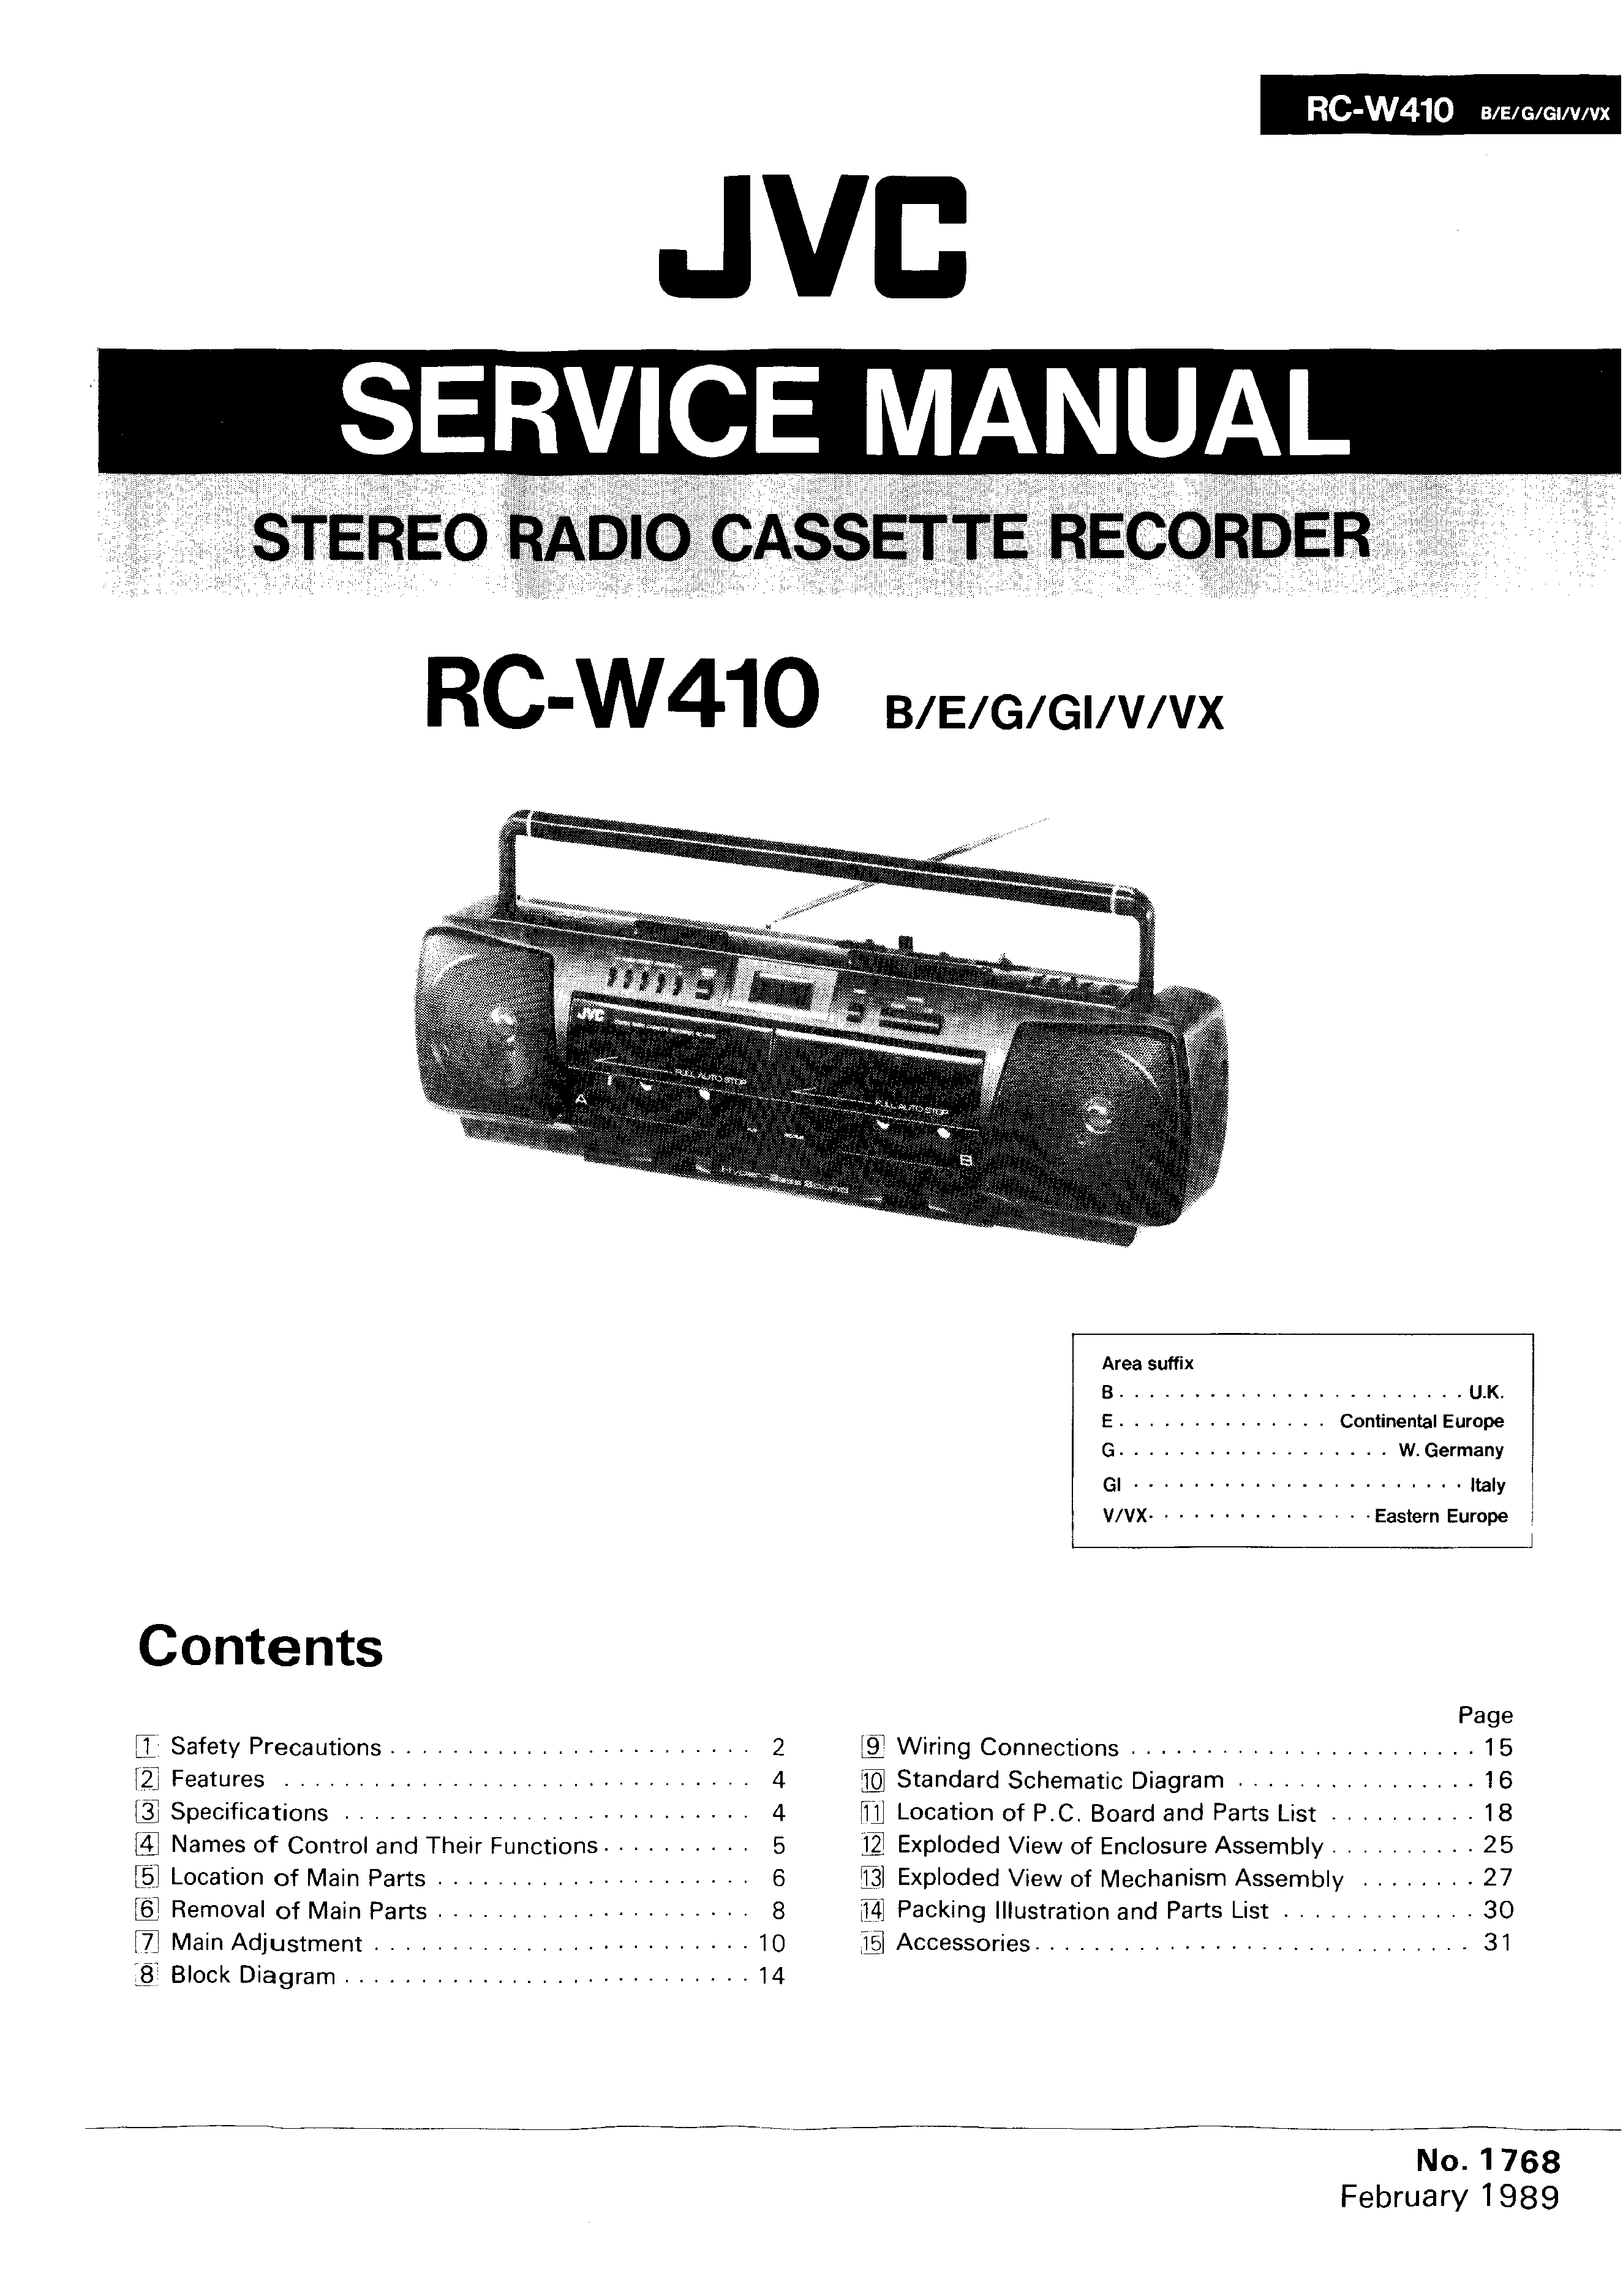 Jvc Rcw410 Service Manual Immediate Download Schematic Diagram Background Image